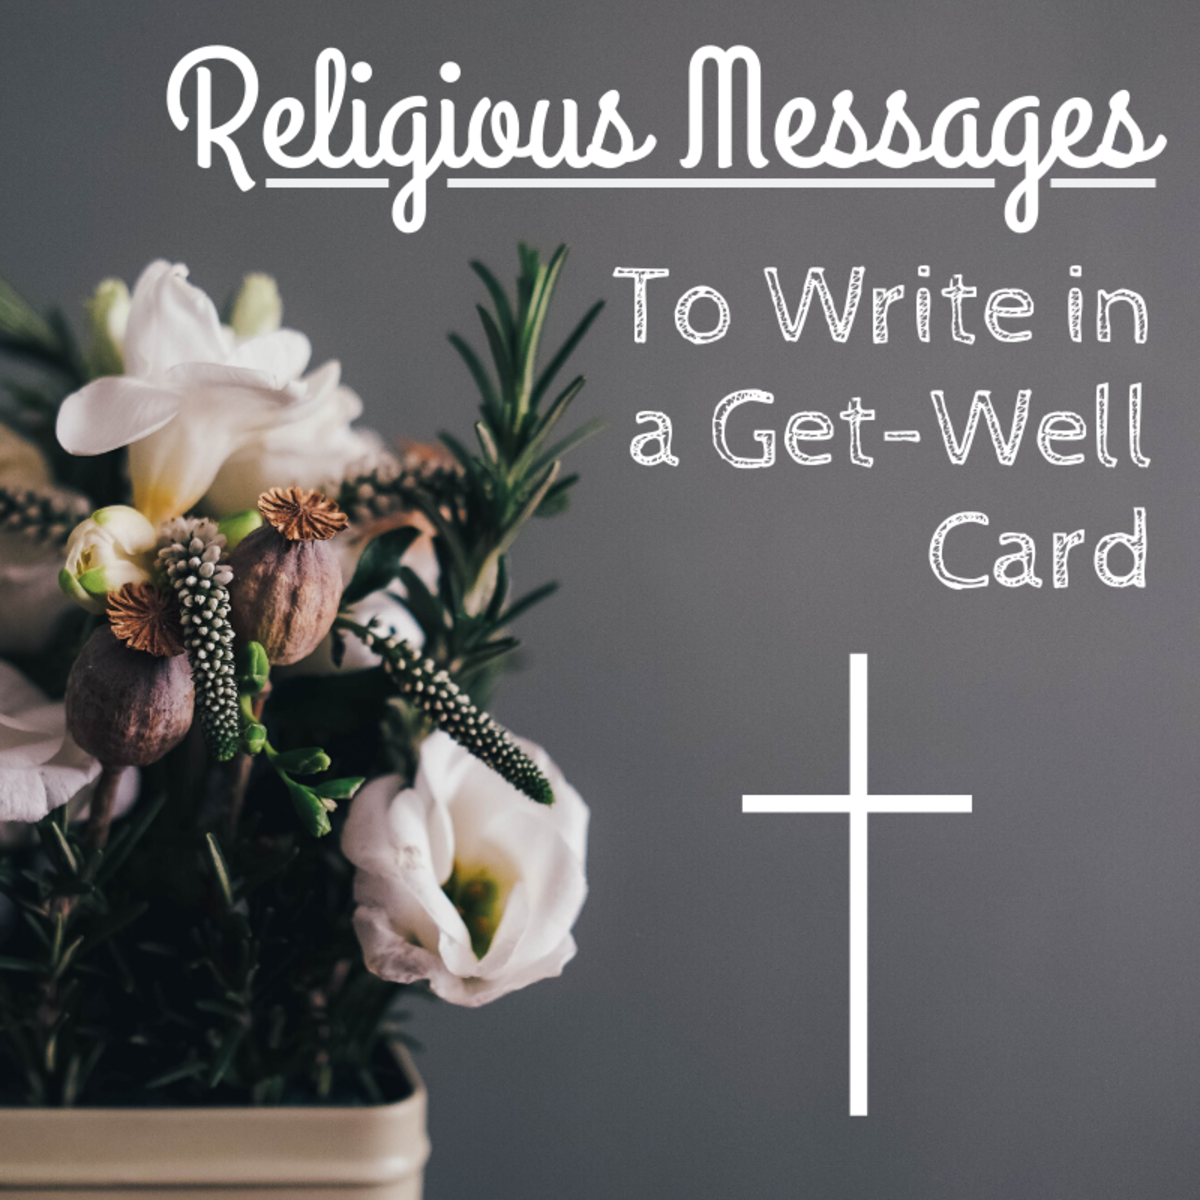 Wishes and Prayers to Write in a Religious